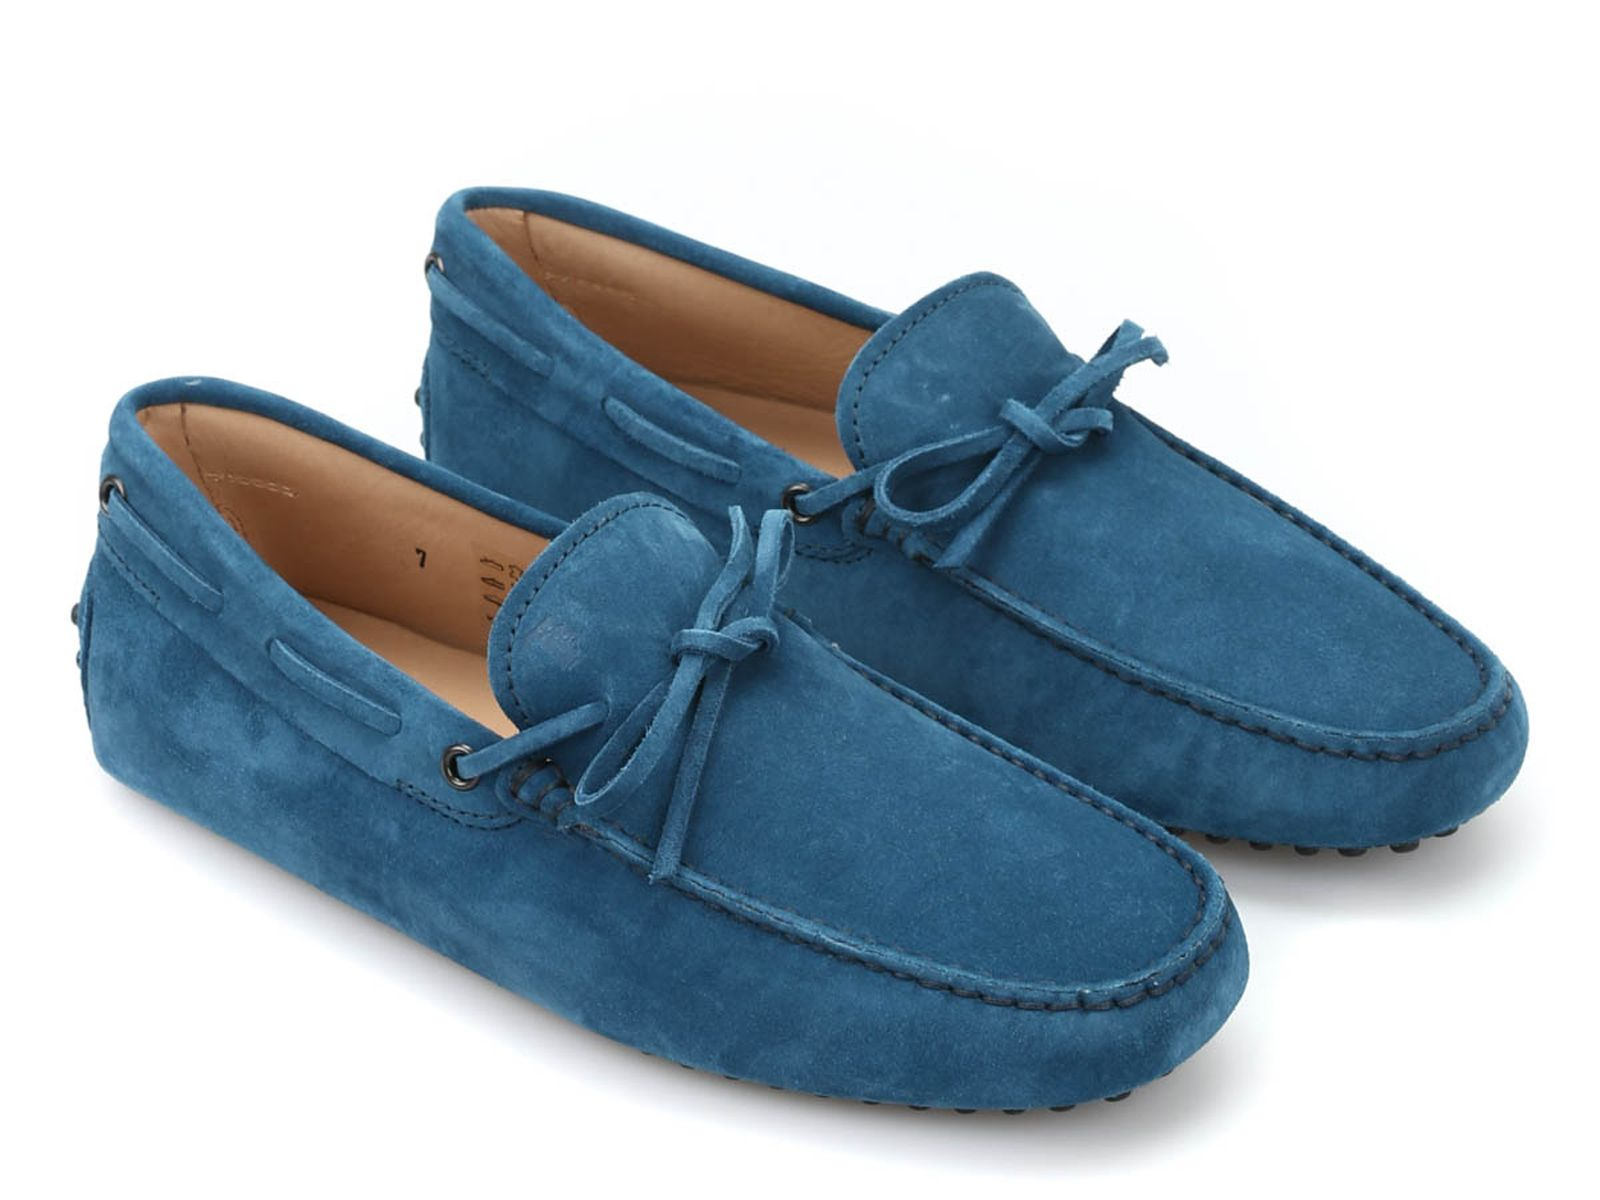 Gommino Moccasins in Leather and Suede Tod's LwLDOeu1zd